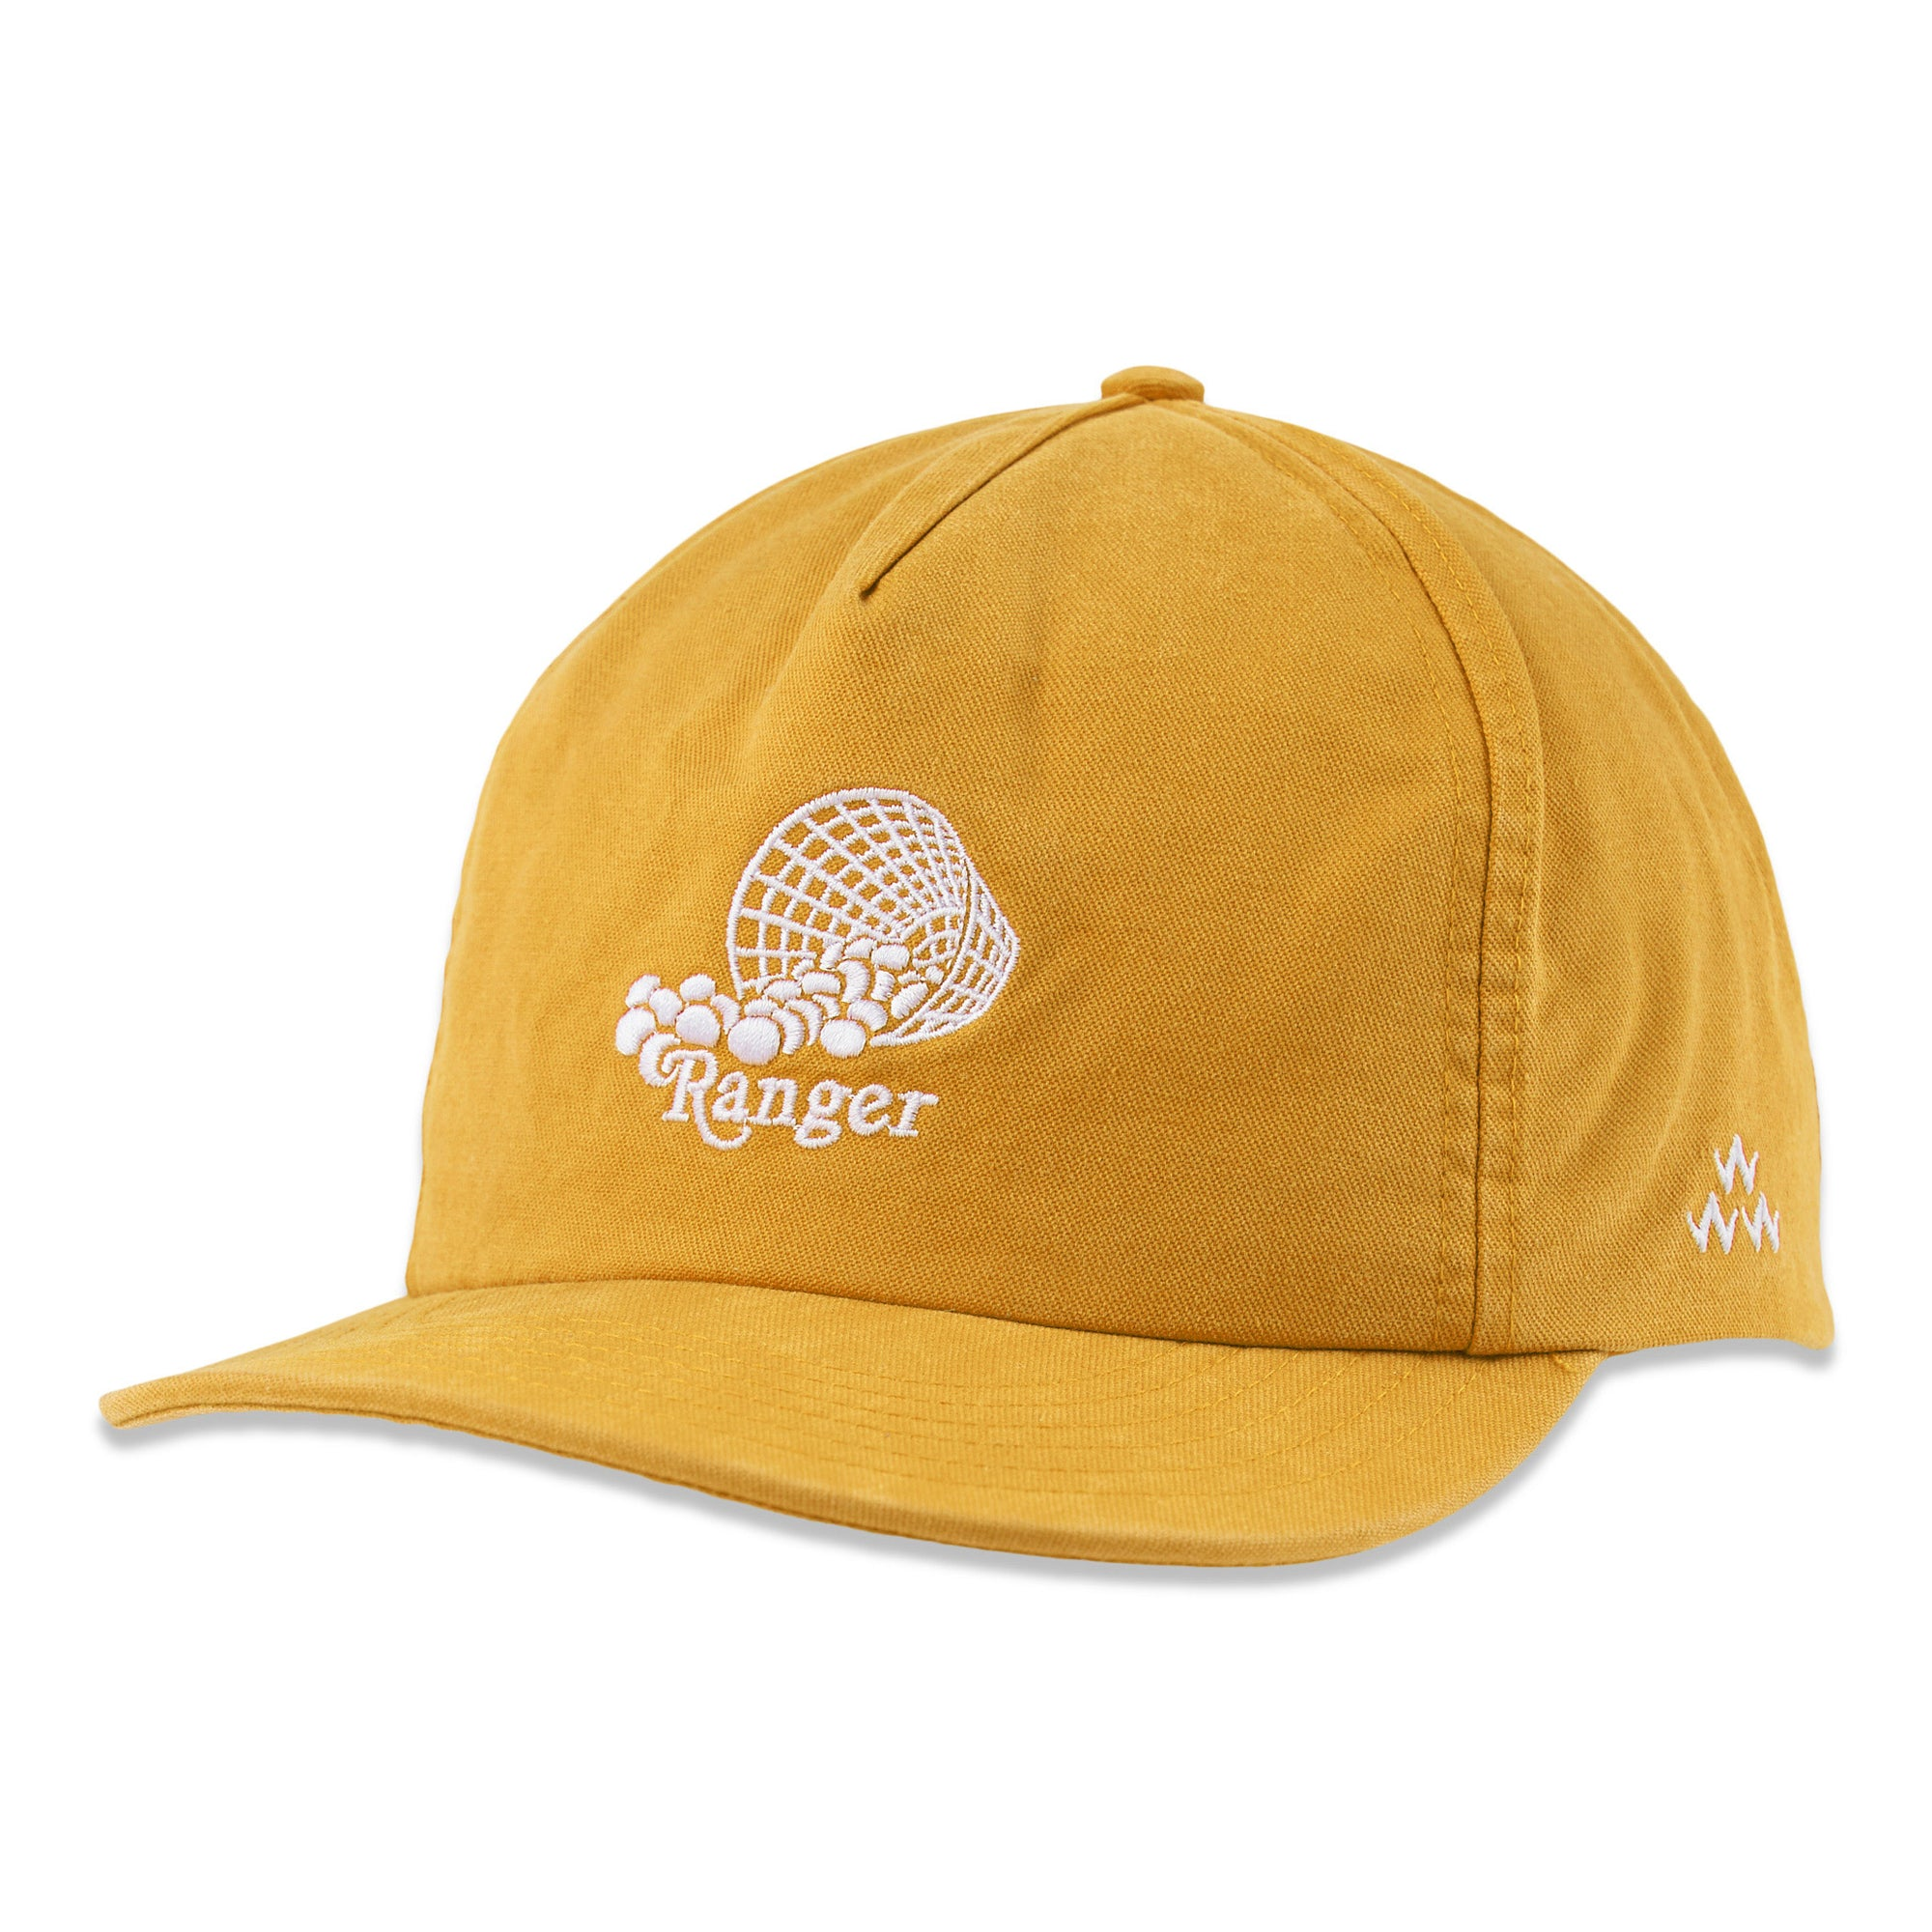 birds-of-condor-yellow-golf-range-ranger-soft-peak-hat-cap-front